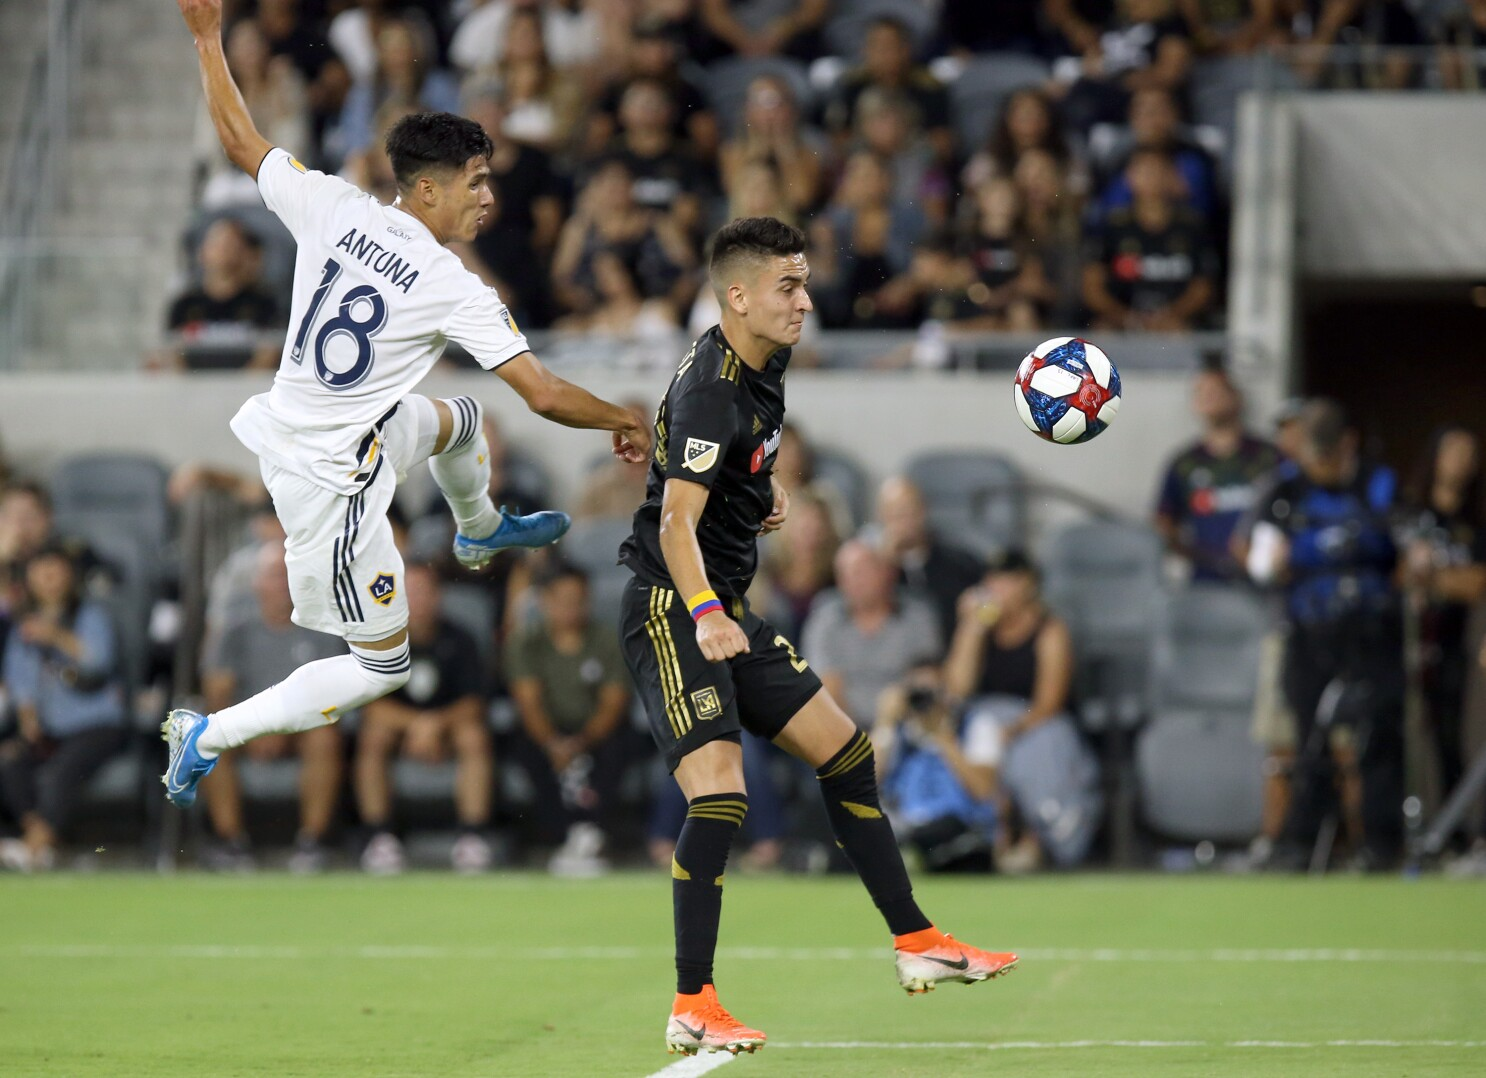 Carlos Vela exits early as LAFC and Galaxy play to tie